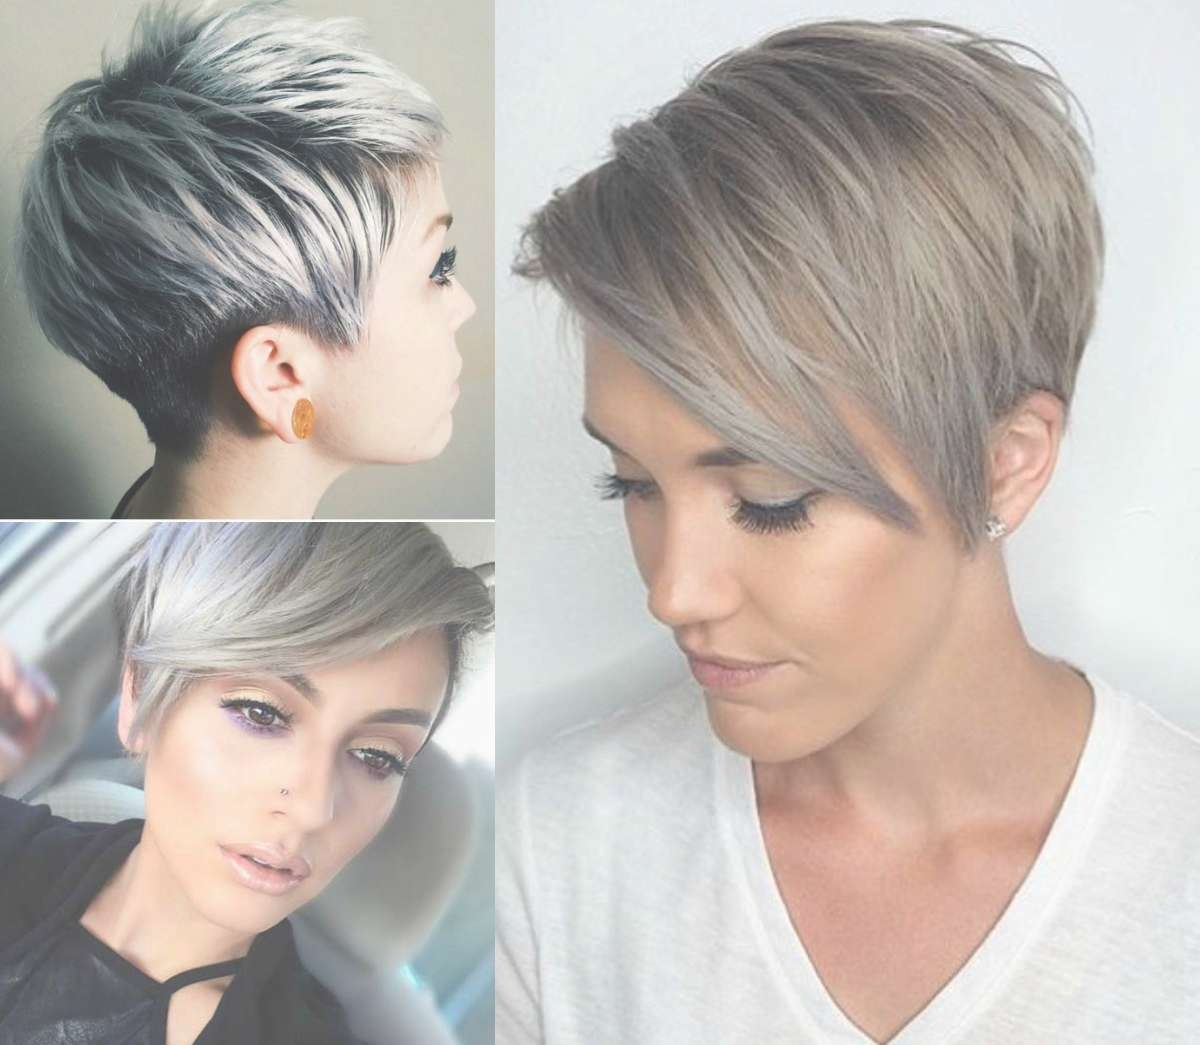 Winter Fit: Extravagant Silver Pixie Haircuts | Hairdrome With Most Recent Pixie Hairstyles (View 4 of 16)